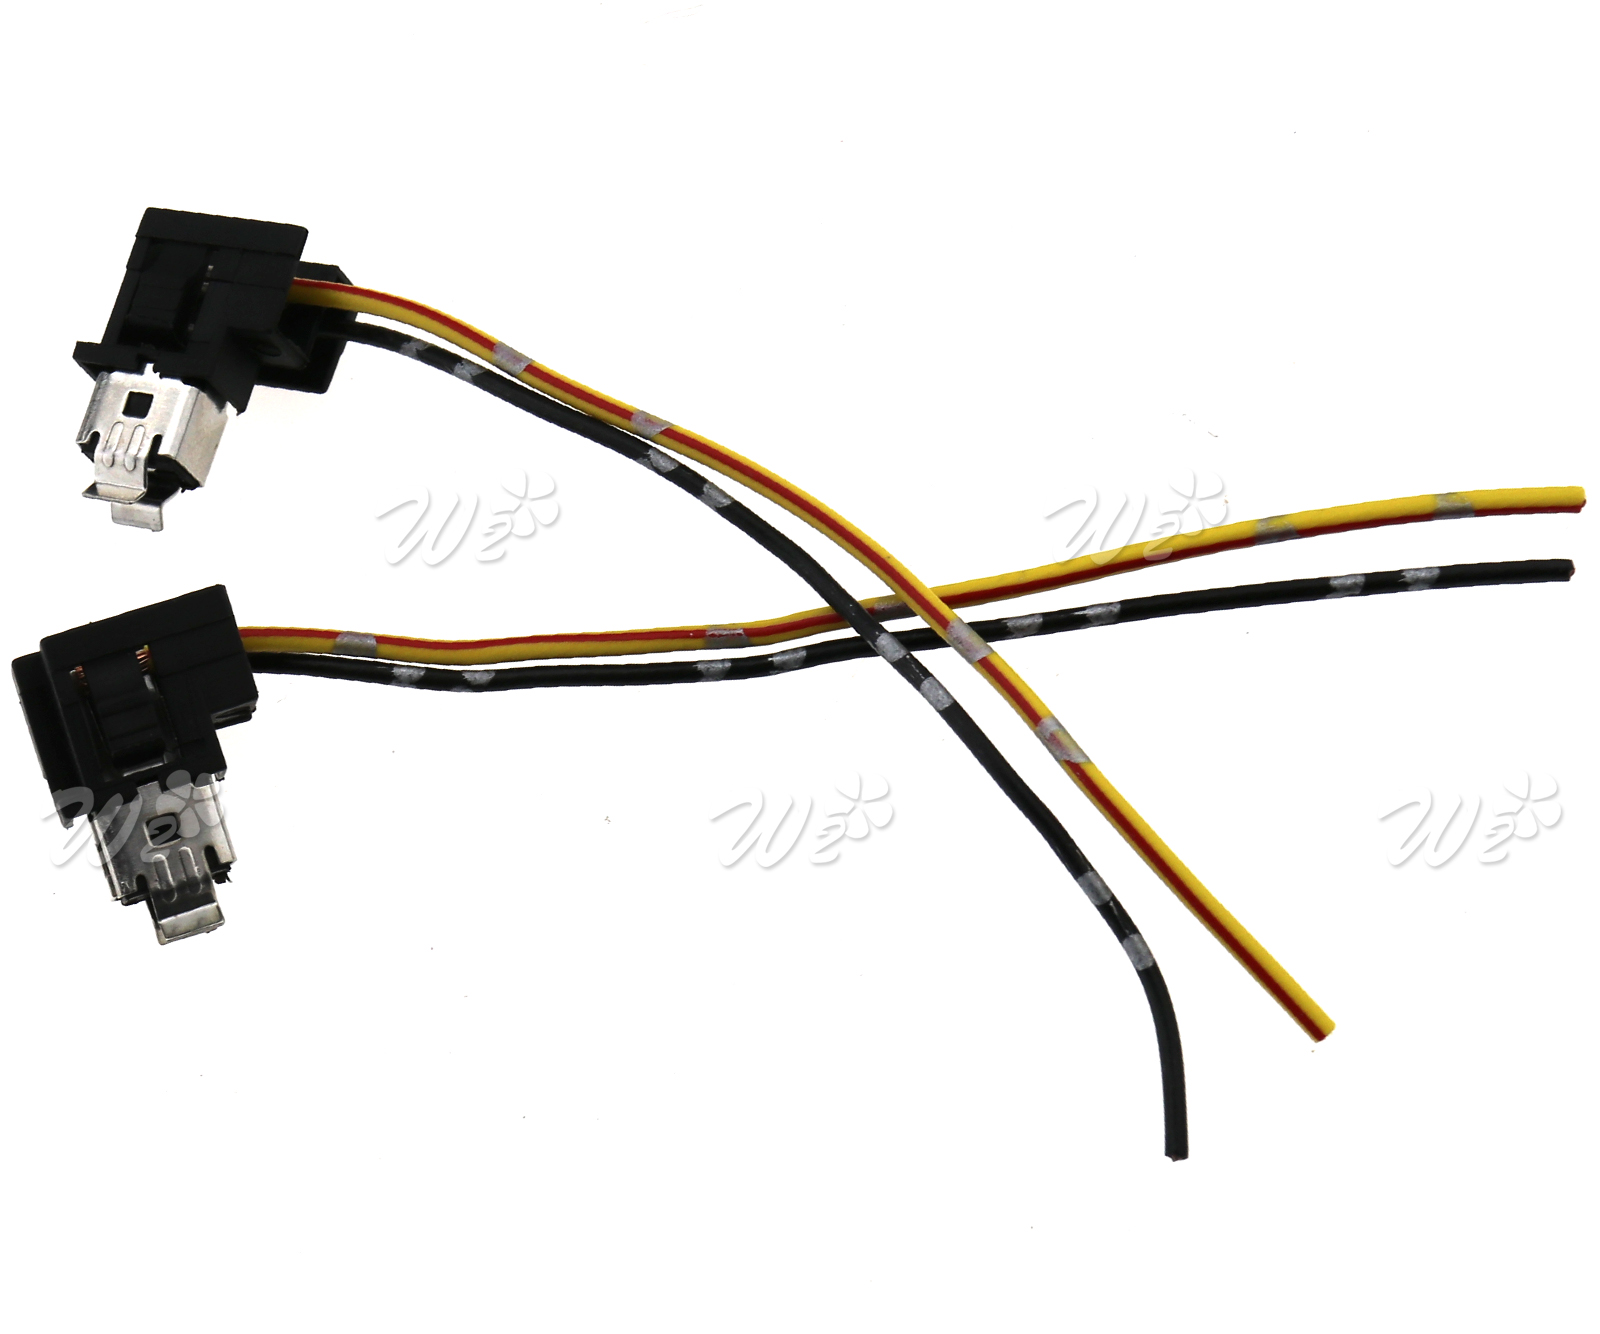 Groovy H1 Head Fog Lamp Light Bulb Socket Holder Wiring Connector Plug For Wiring Cloud Tziciuggs Outletorg